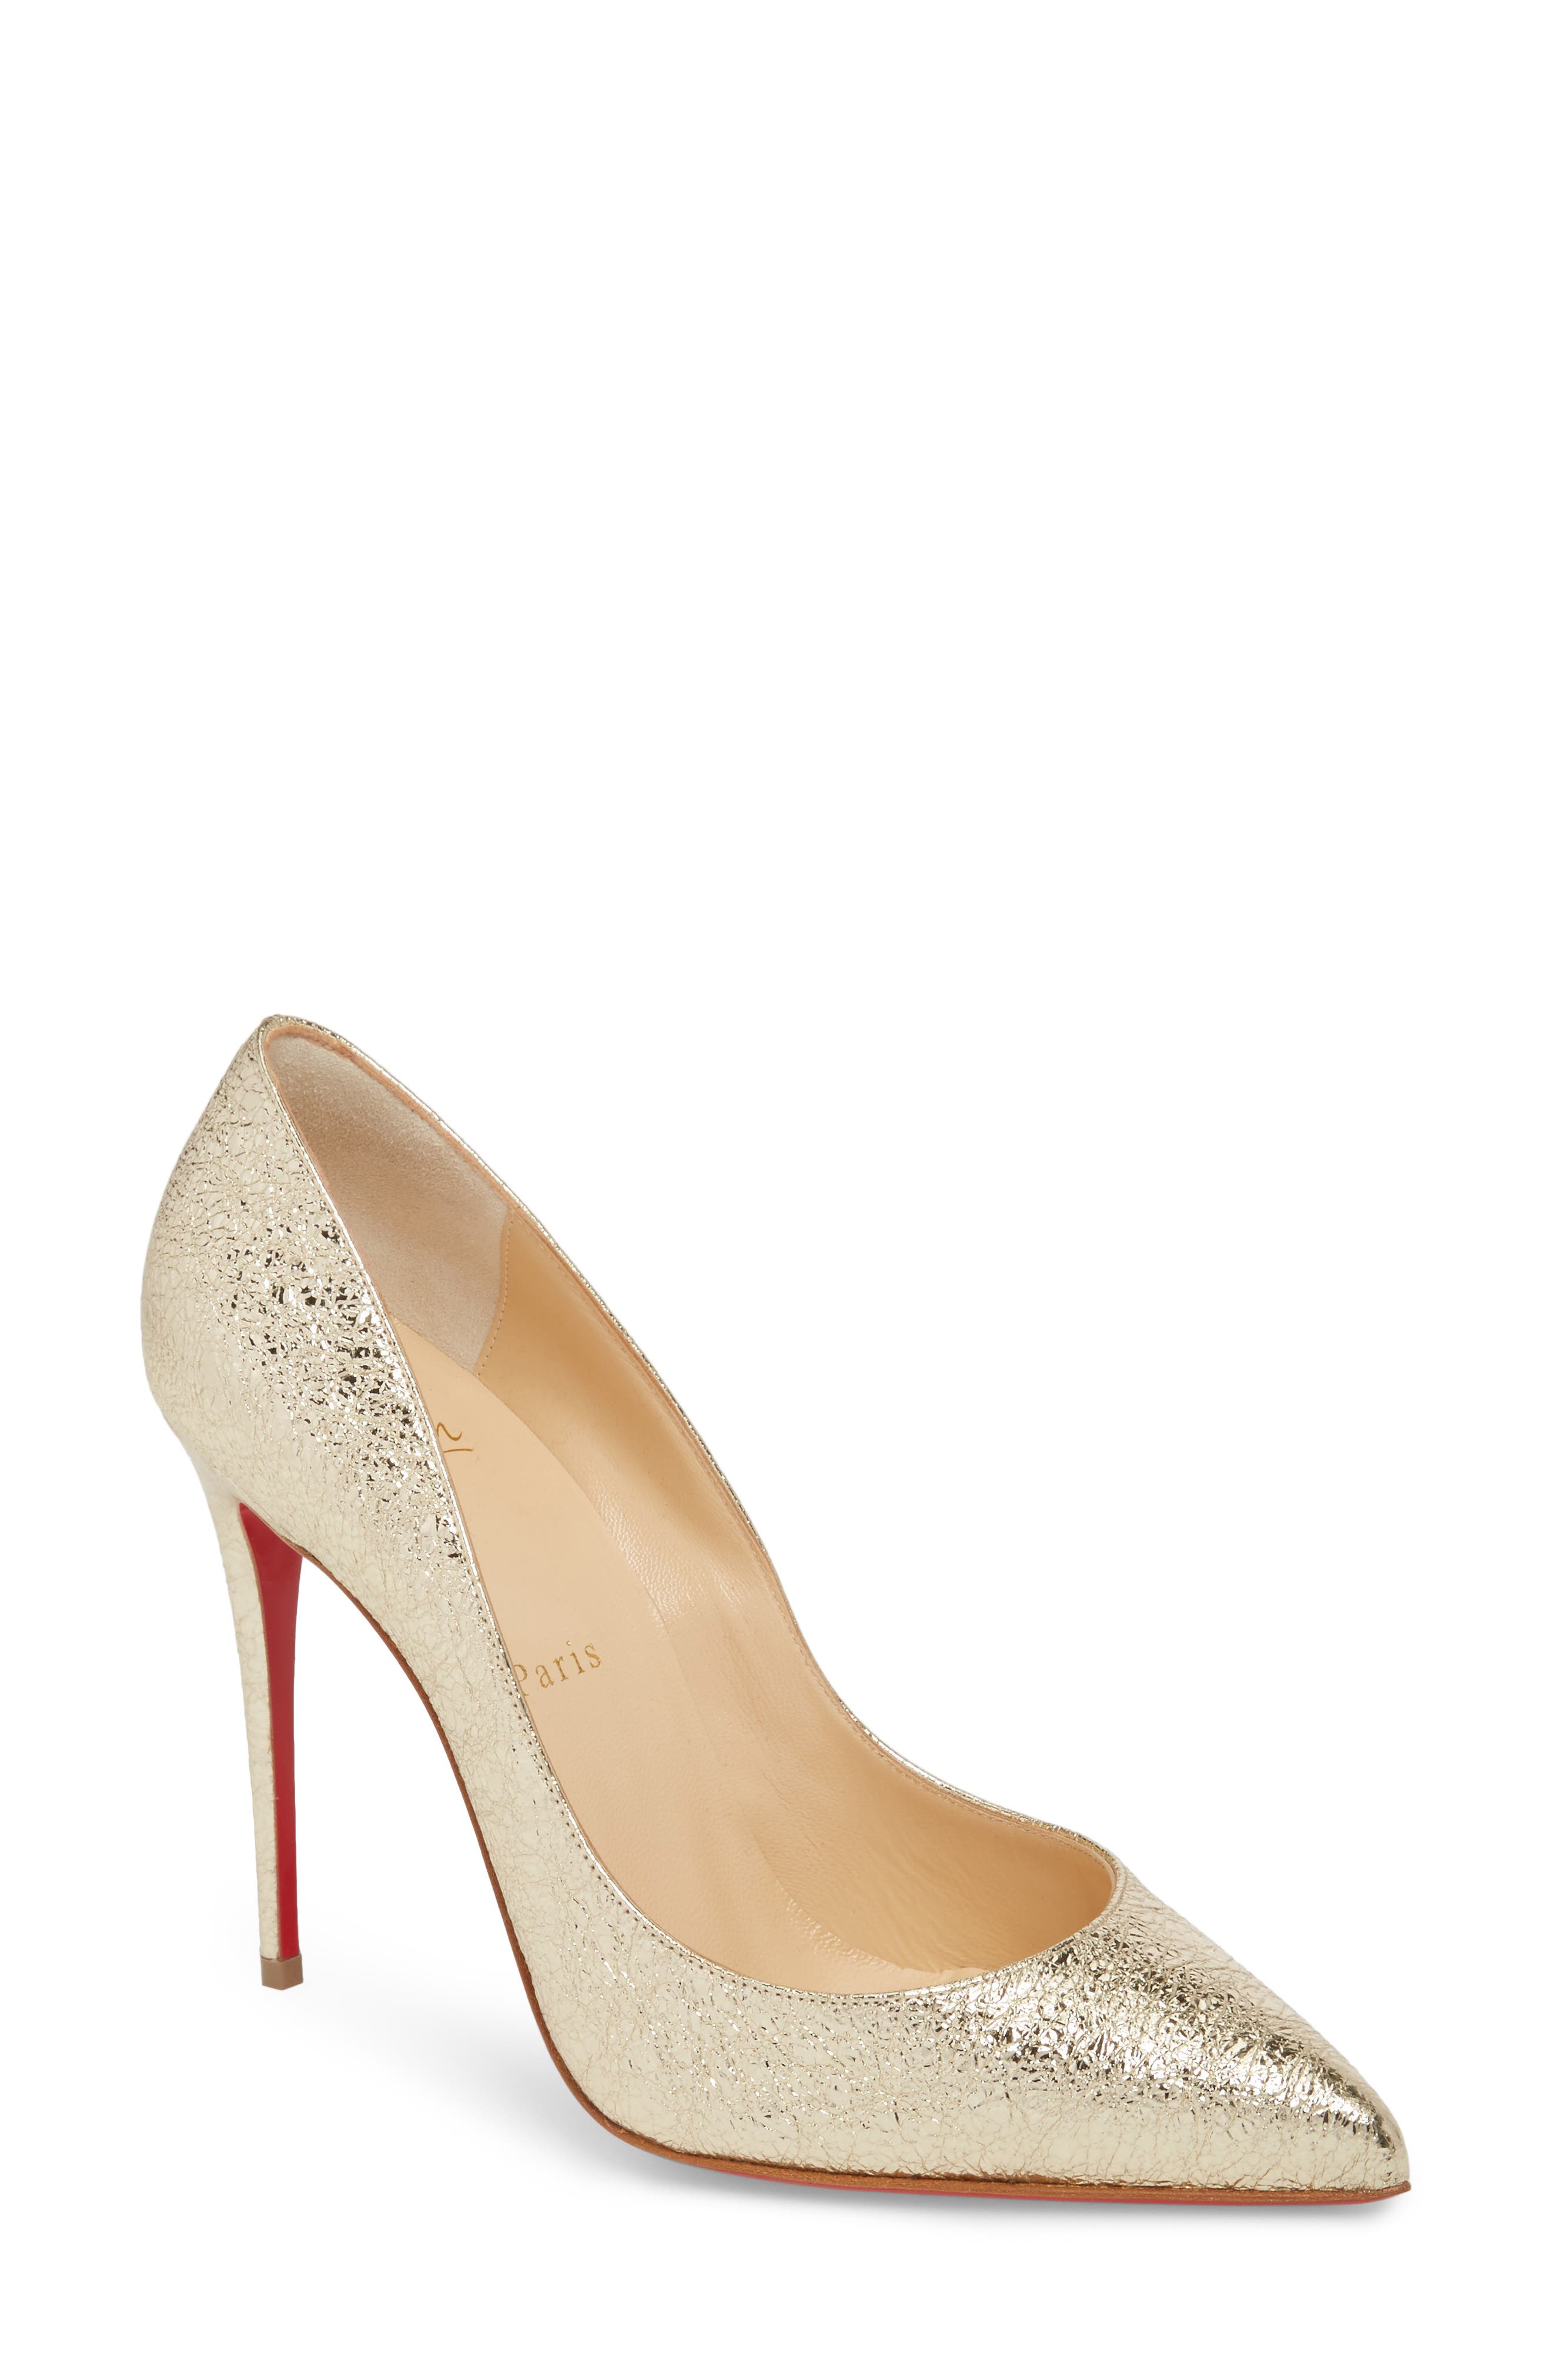 Pigalle Follies Pointy Toe Pump,                         Main,                         color, 040